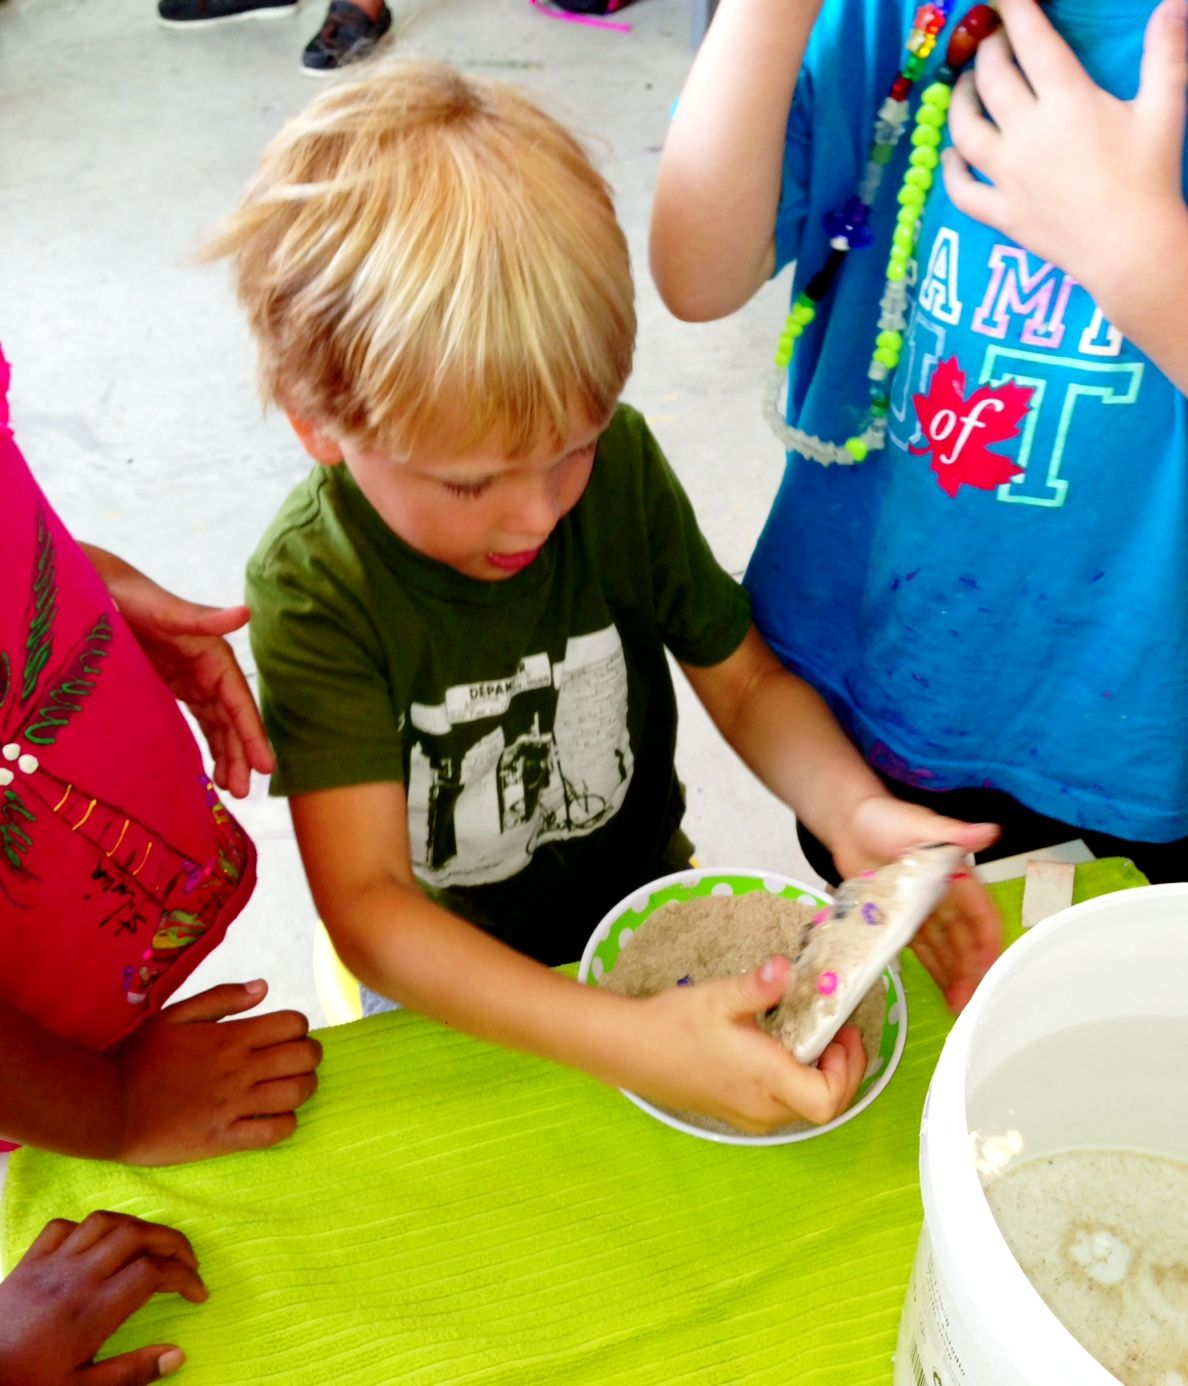 Sand and plaster mold making!